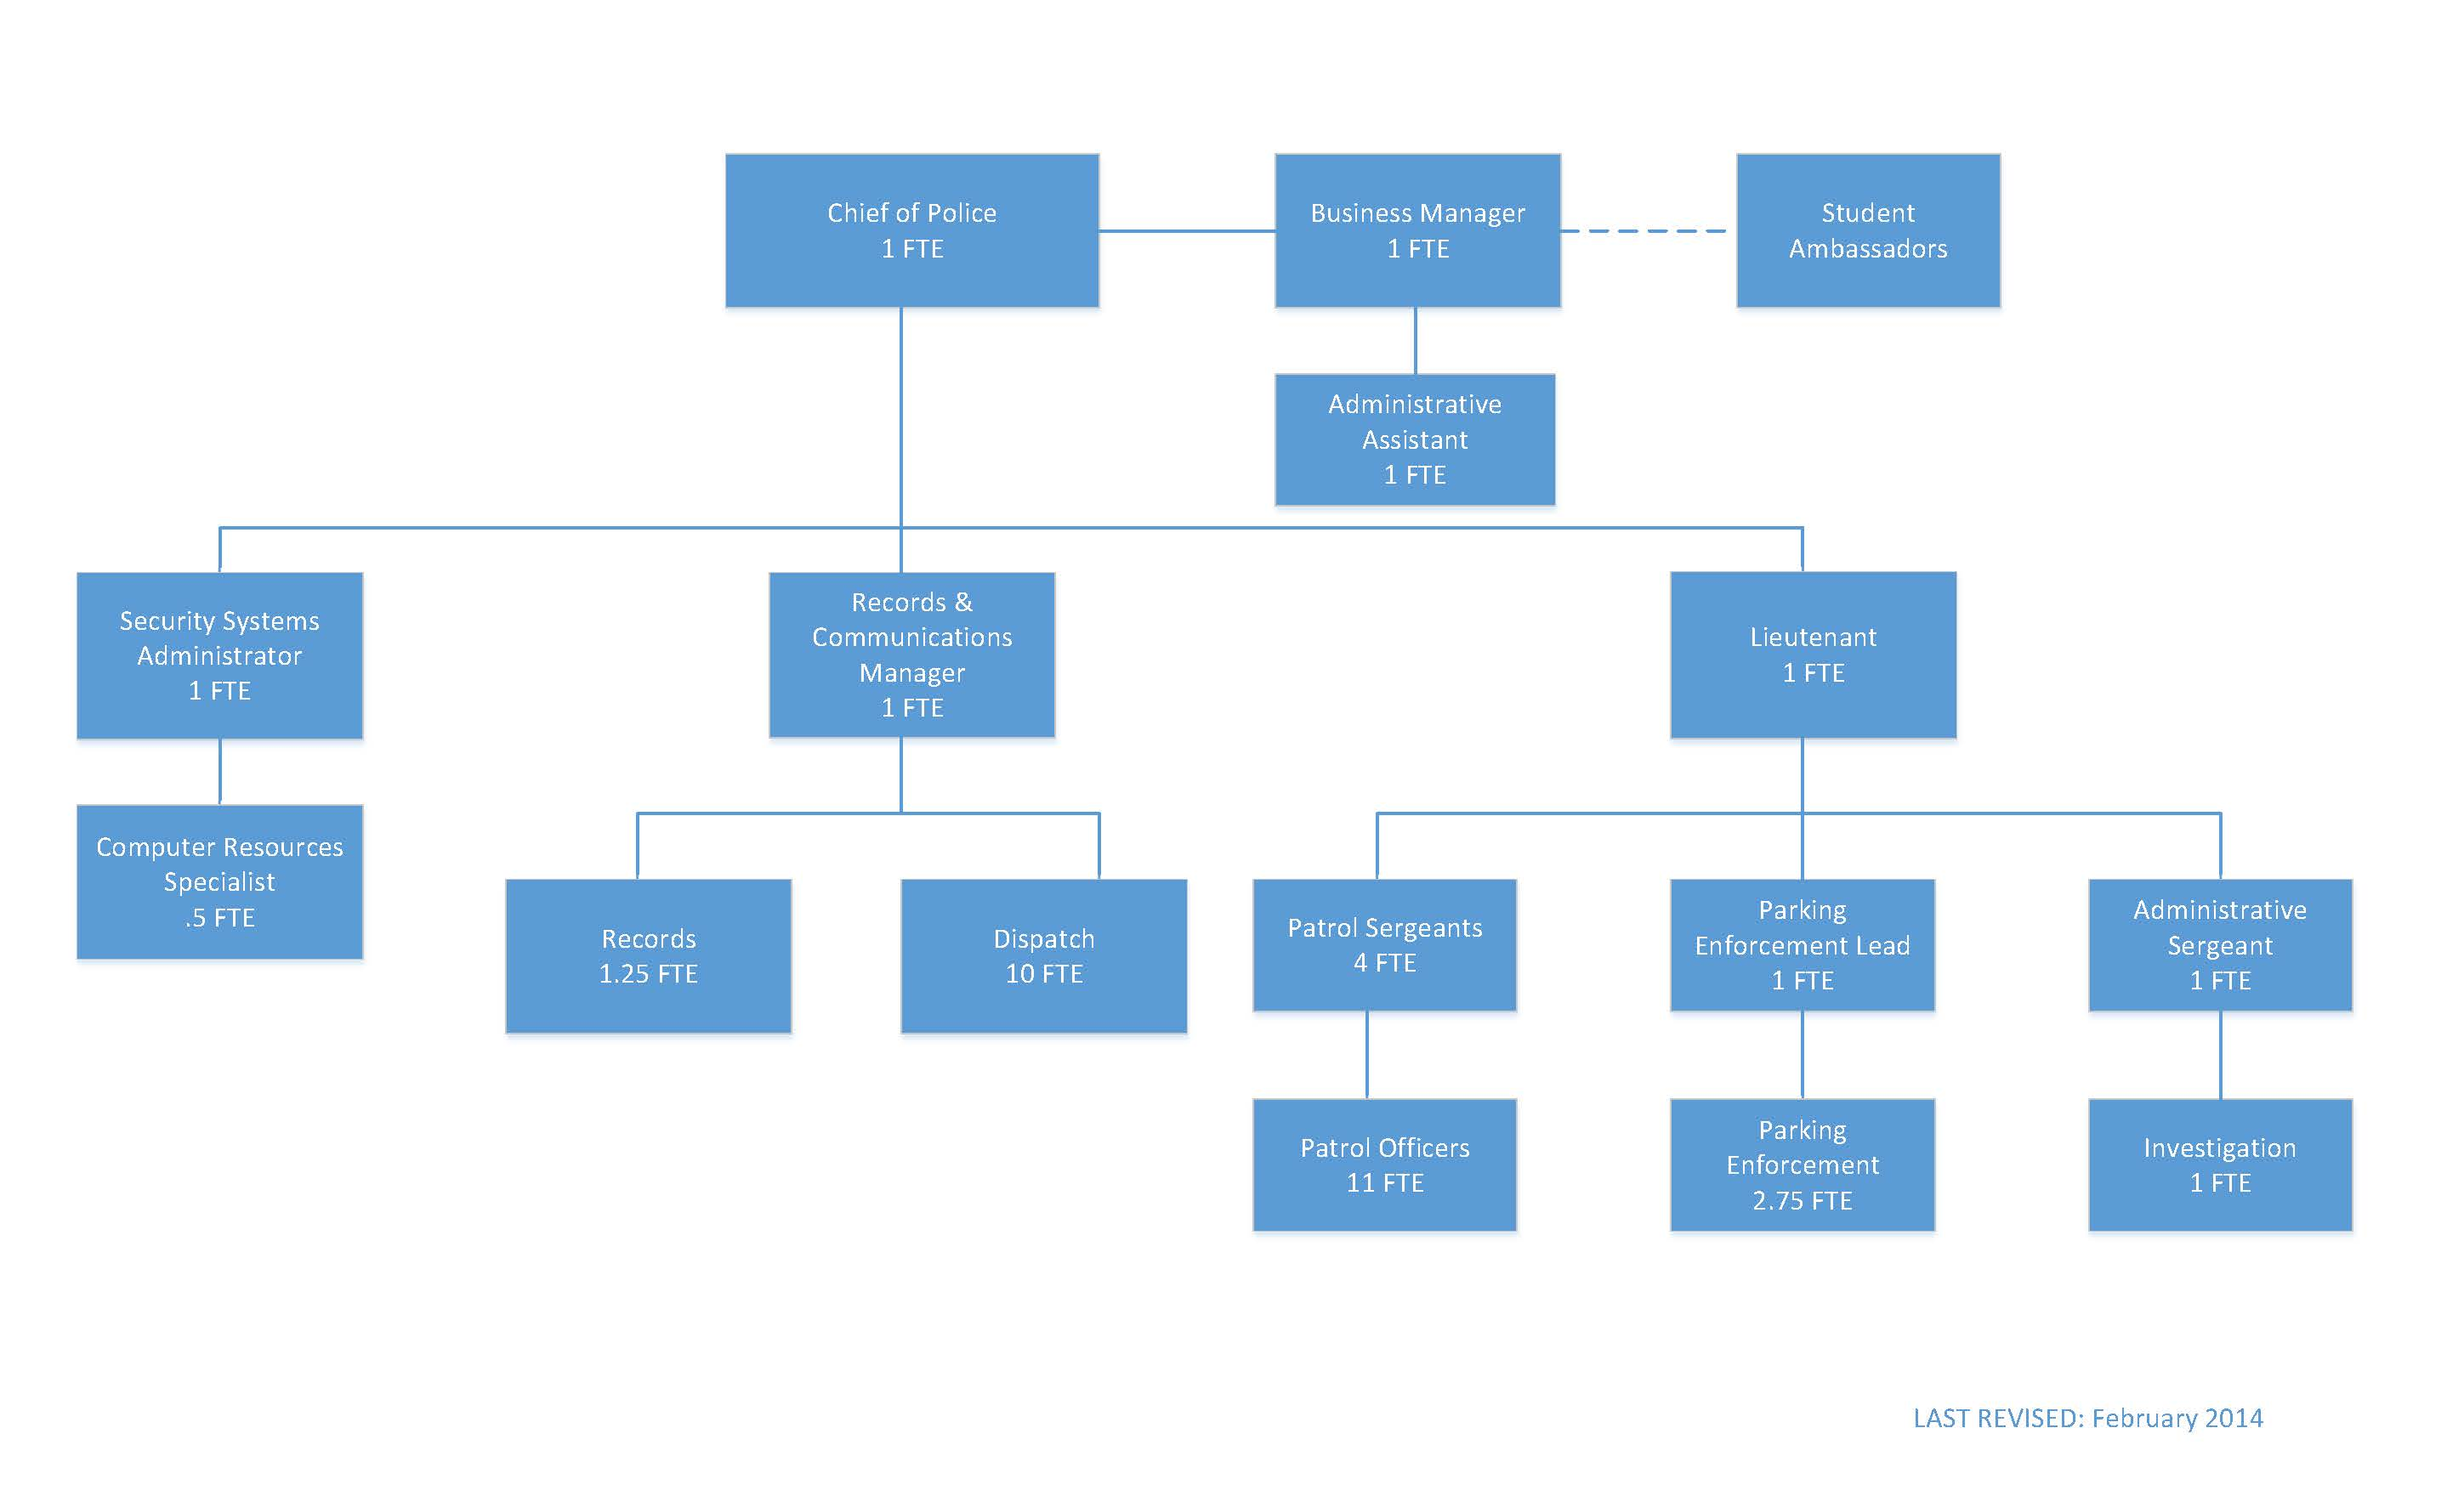 uc santa cruz police department organization chart